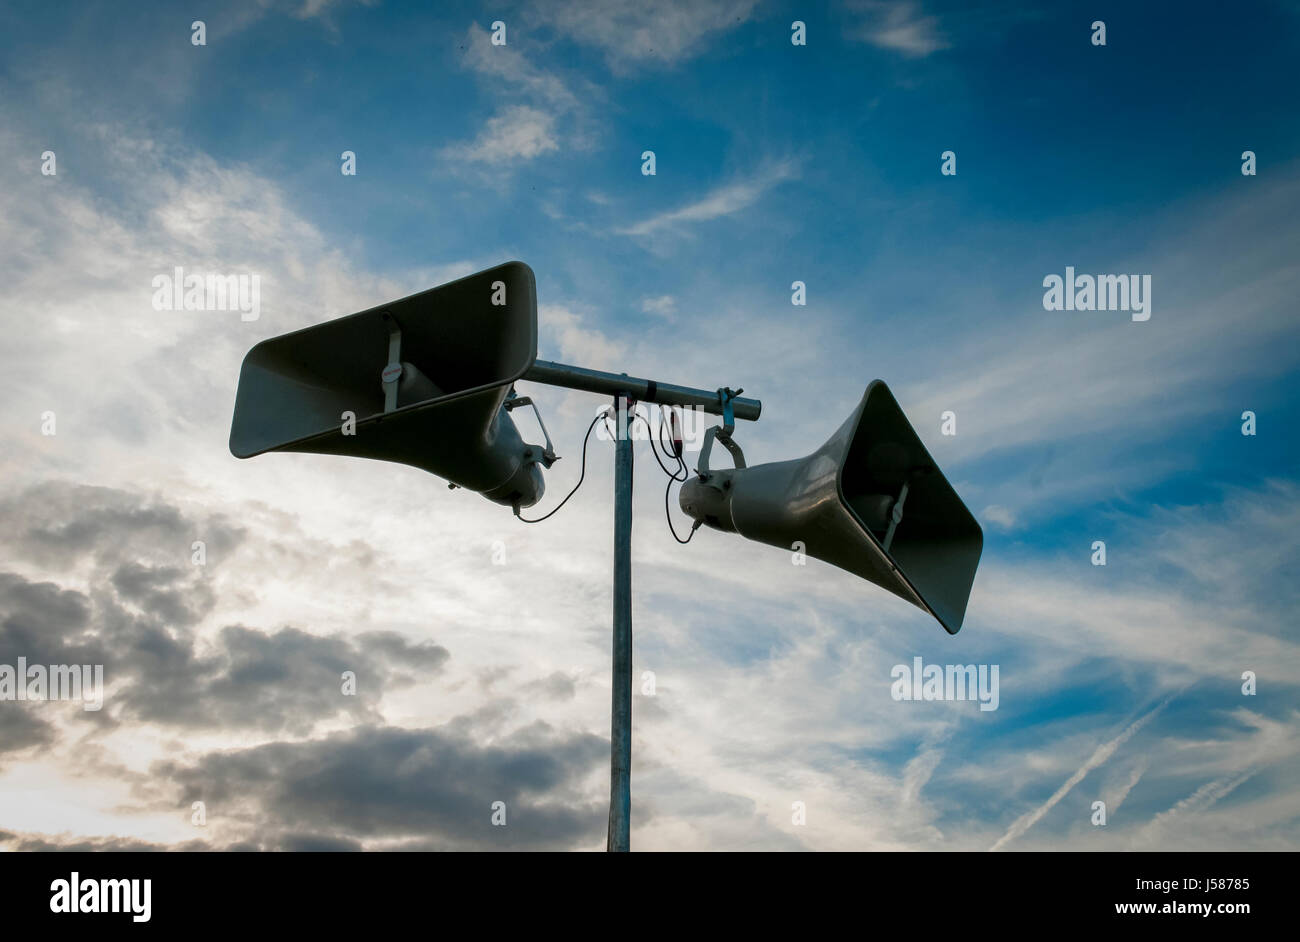 Public Address System against a blue sky - Stock Image